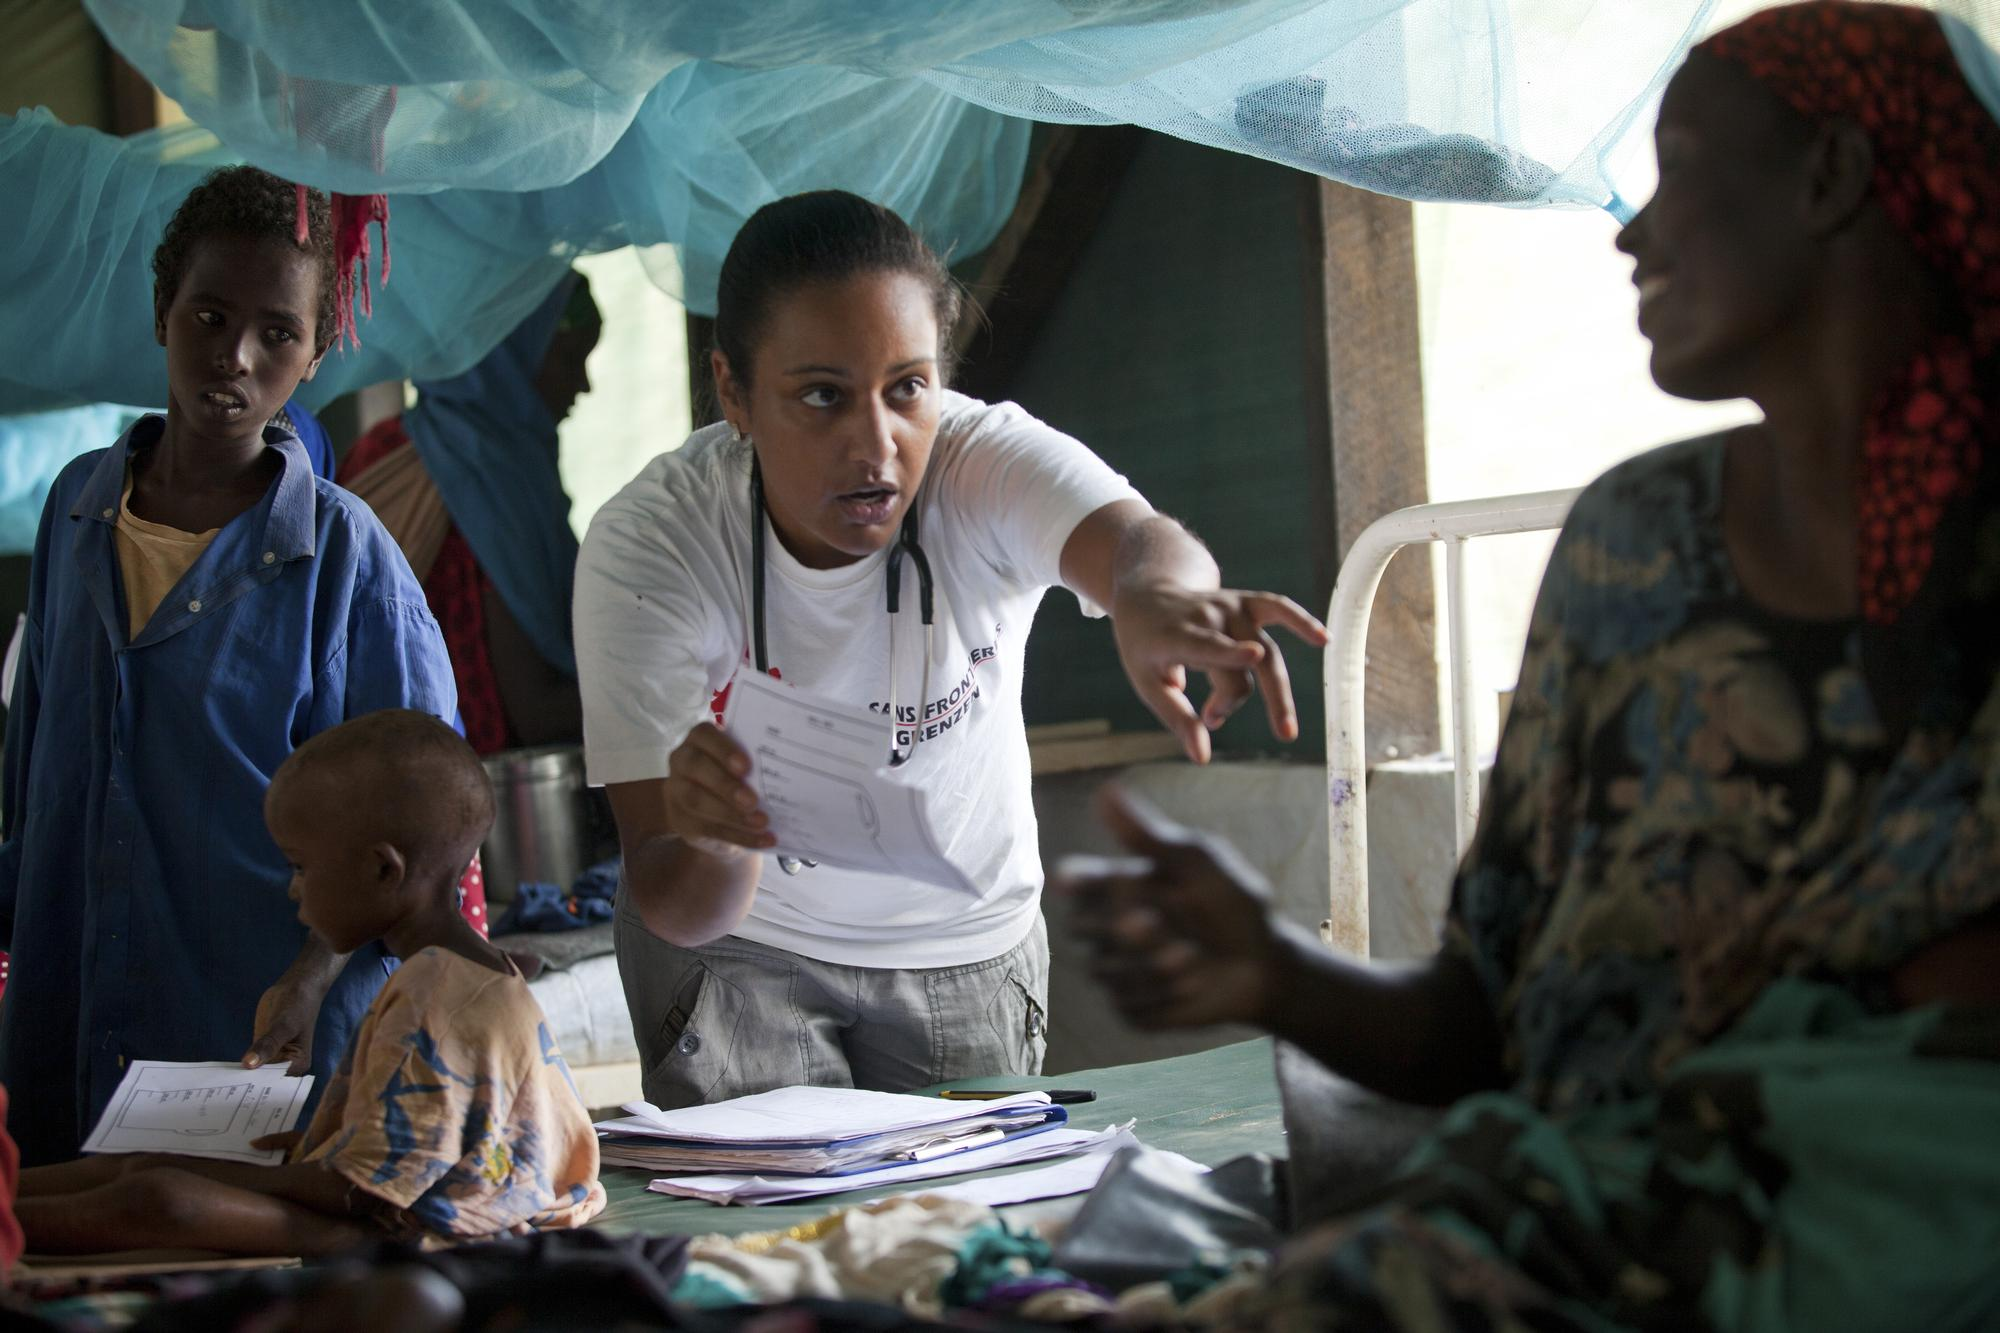 MSF Doctor Luana Lima seeing patients at the MSF hospital in  Dadaab refugee camp in northern Kenya